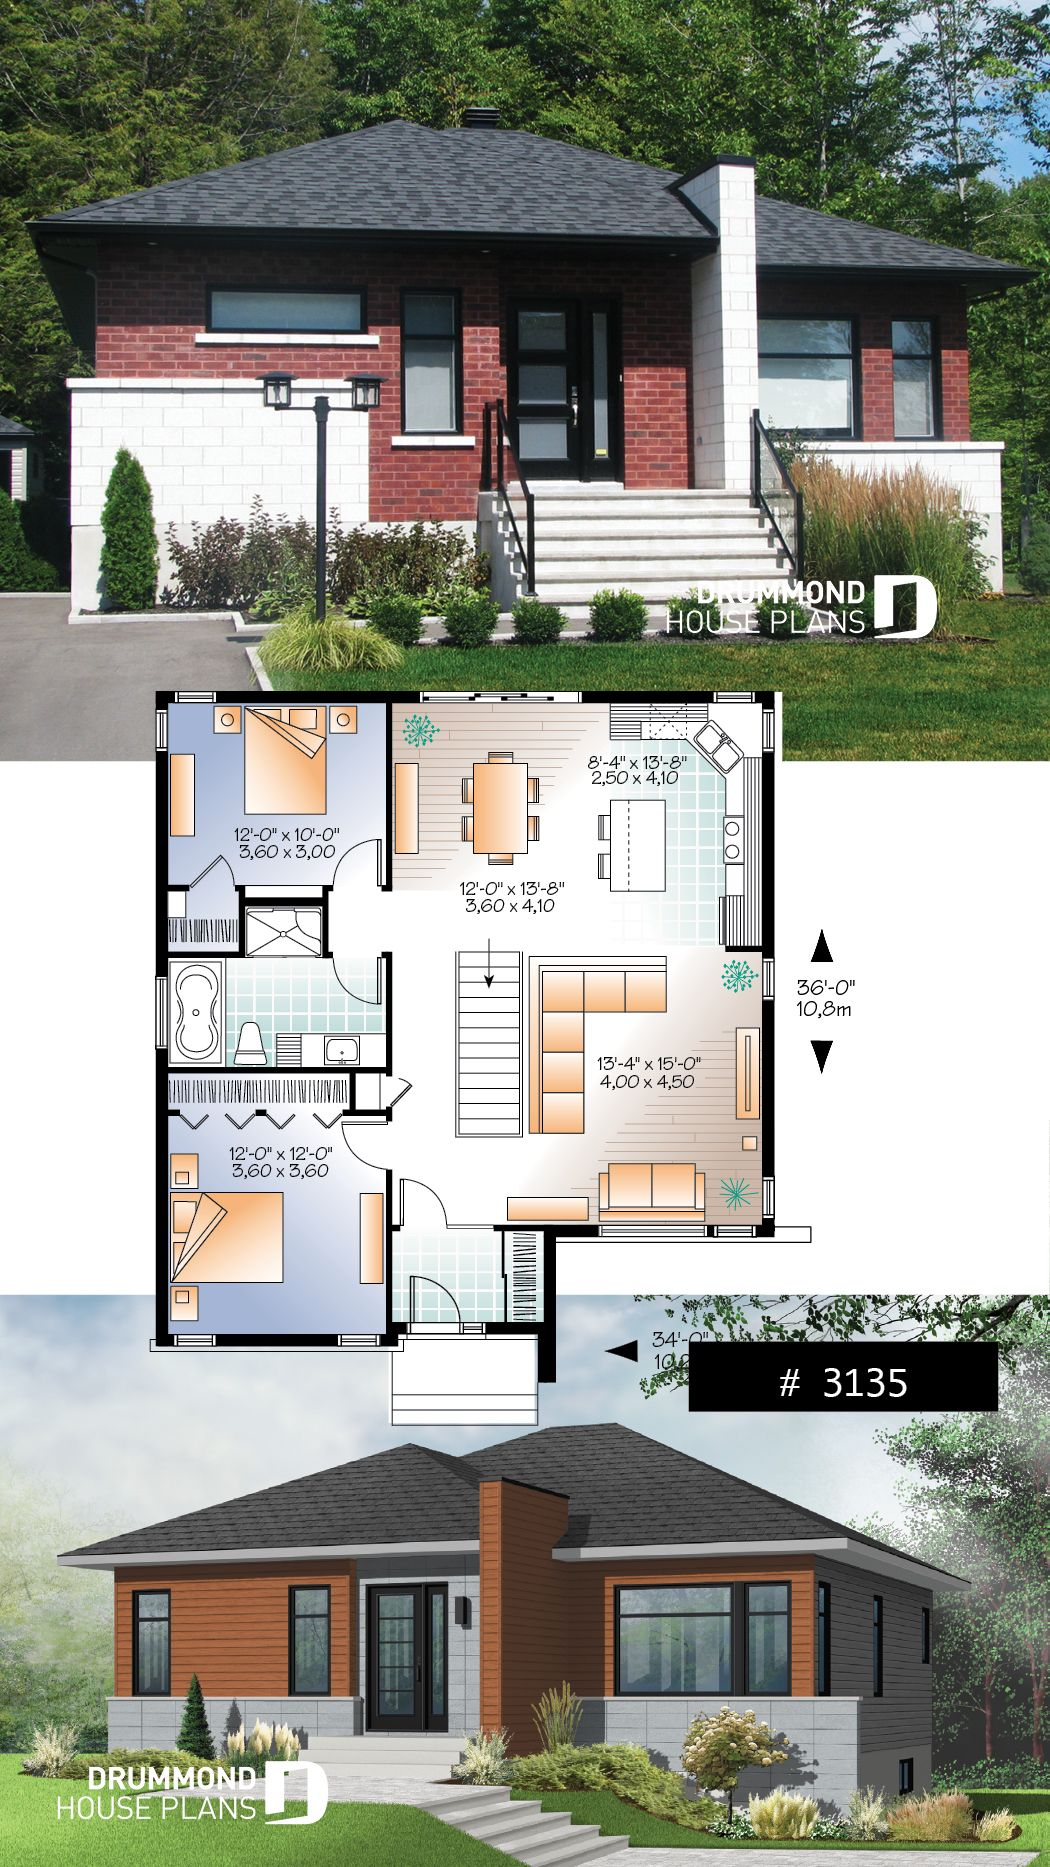 house plan Camelia No. 3135 | Courtyard house plans, House ...